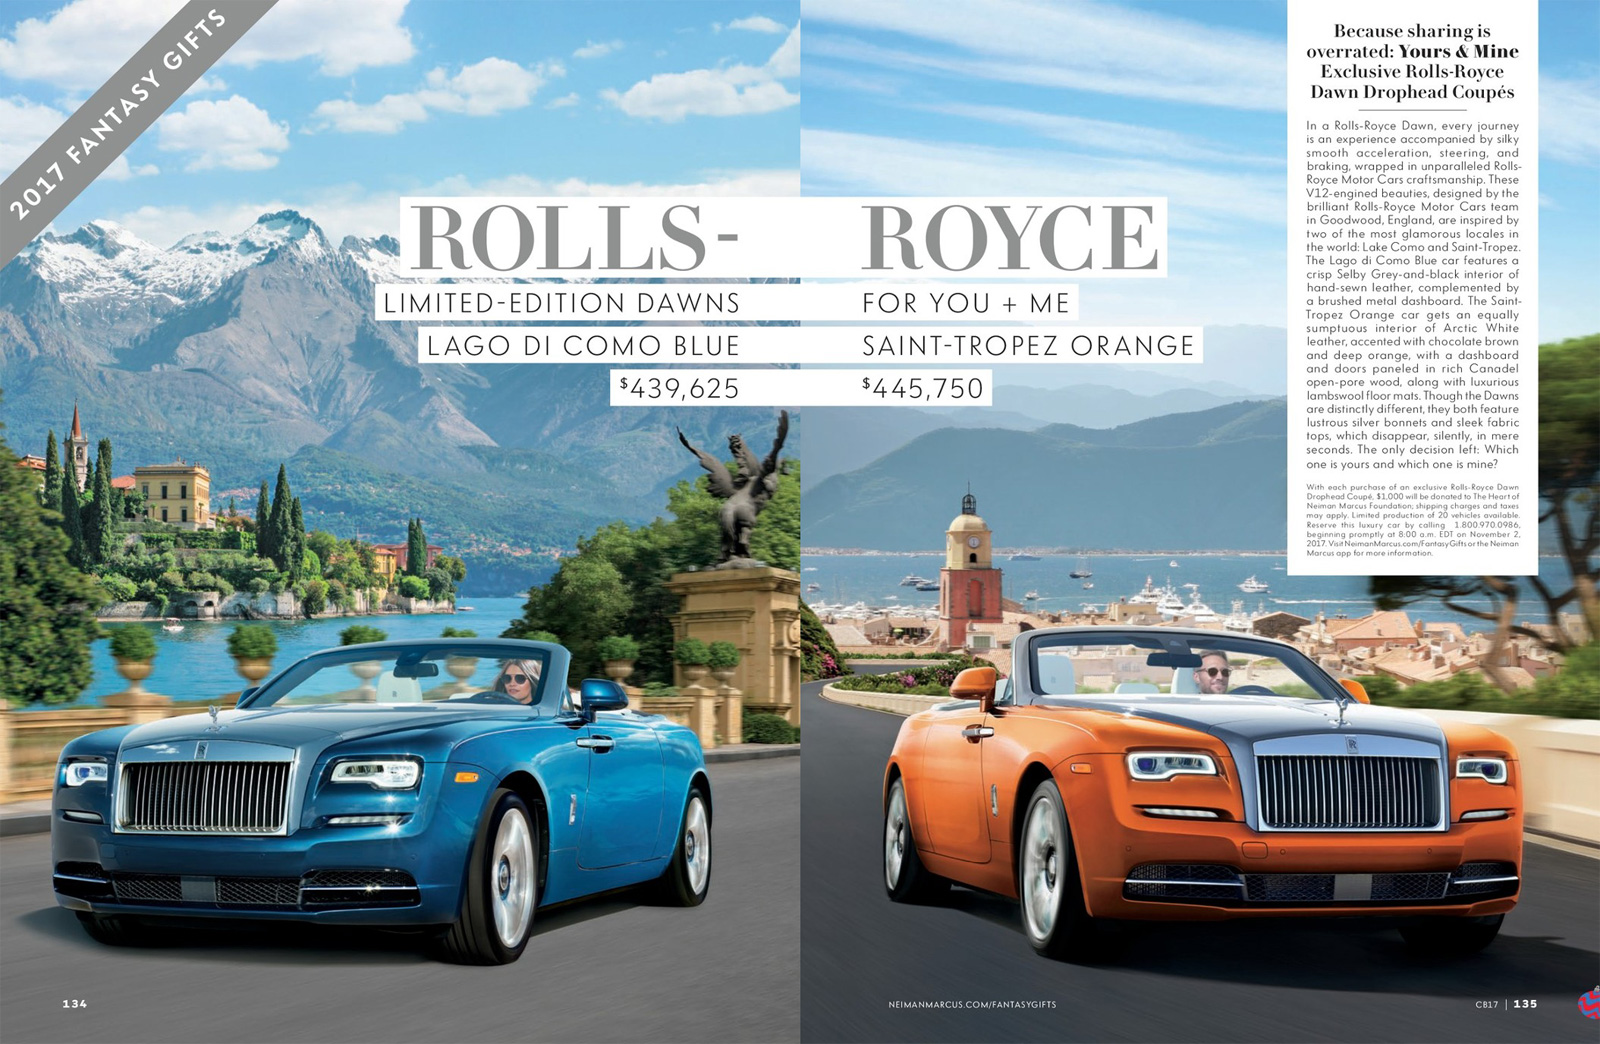 Yours and Mine Rolls-Royce Dawns Land in Neiman Marcus Christmas ...